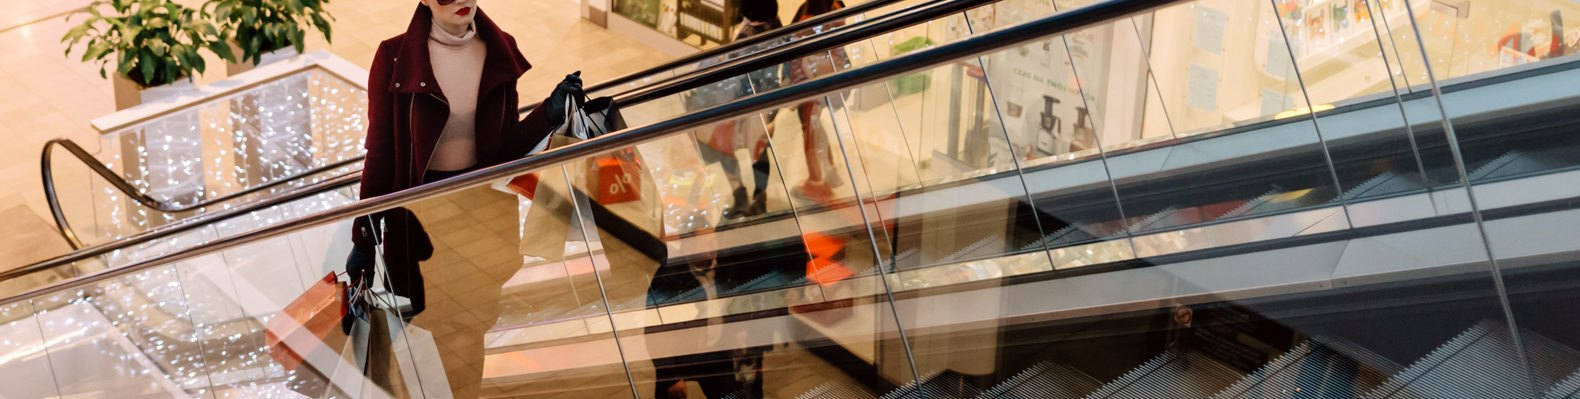 woman with shopping bags on escalator in mall